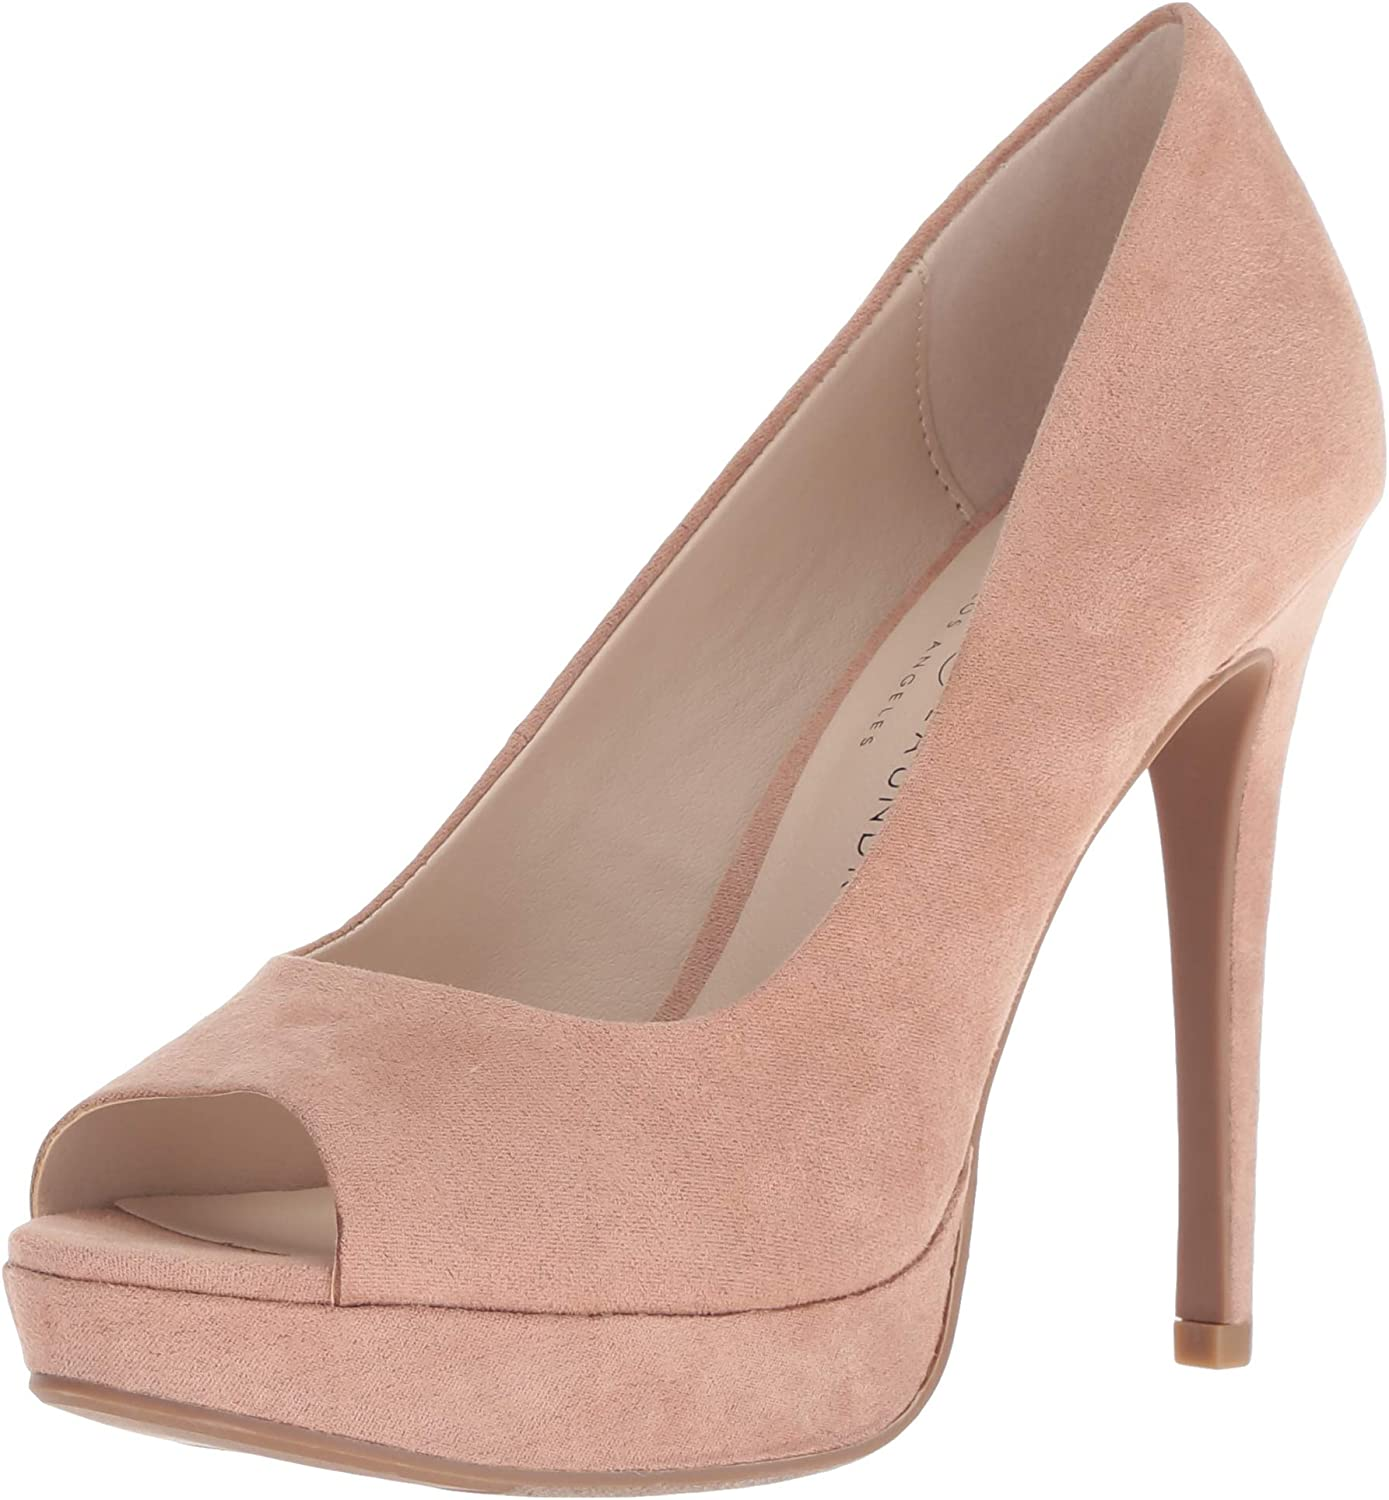 Chinese Laundry Women's Holliston Pump